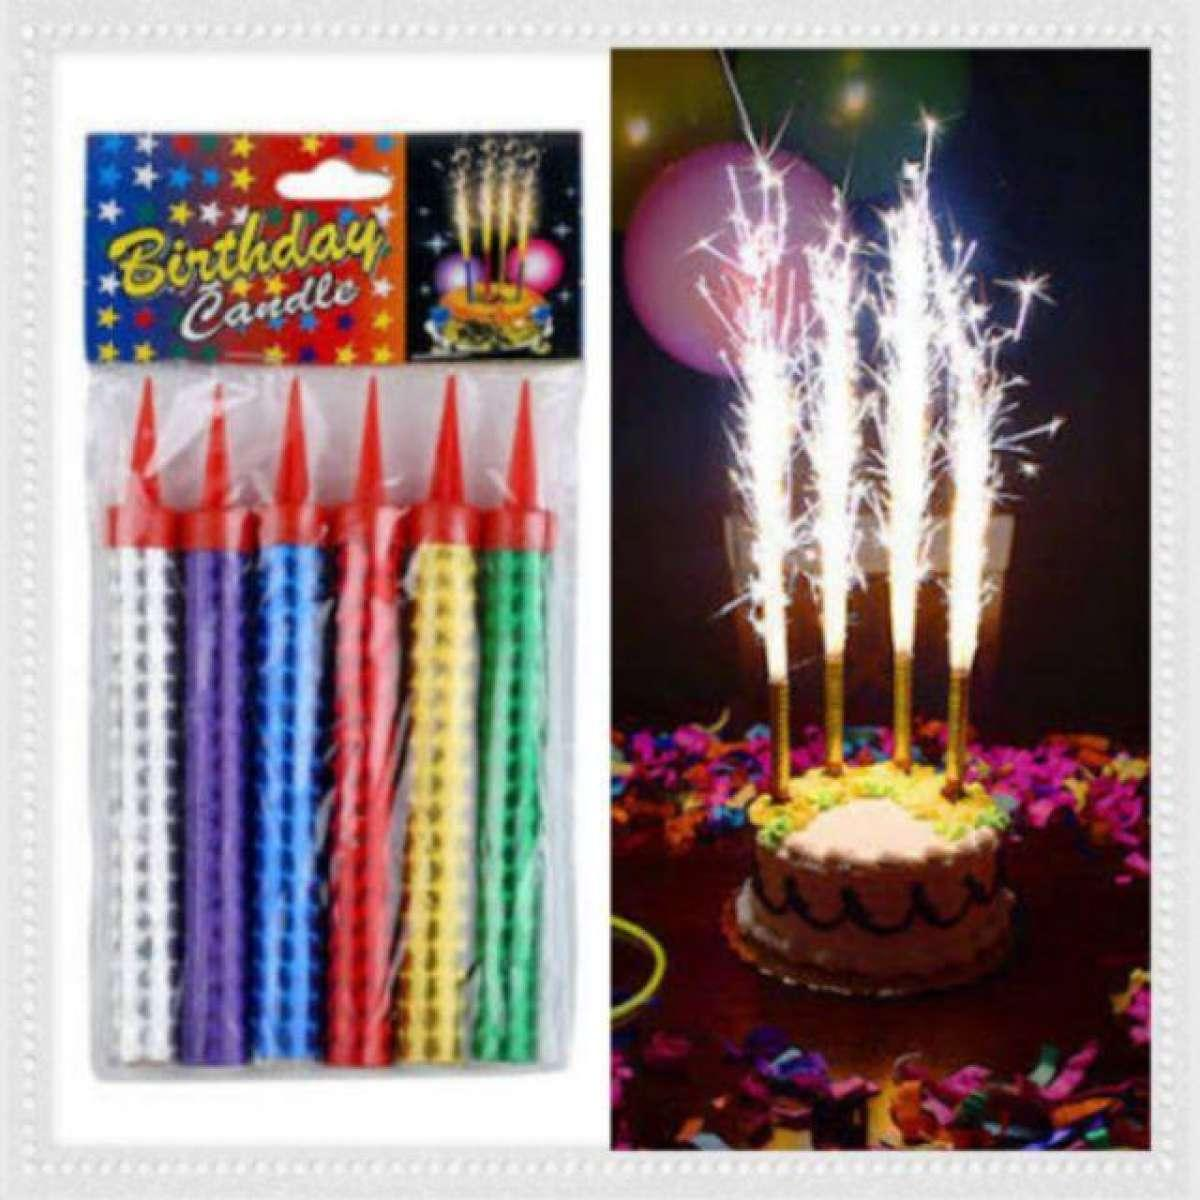 Phenomenal Universal Celebration Candle Birthday Party Cake Candles Spark Funny Birthday Cards Online Alyptdamsfinfo